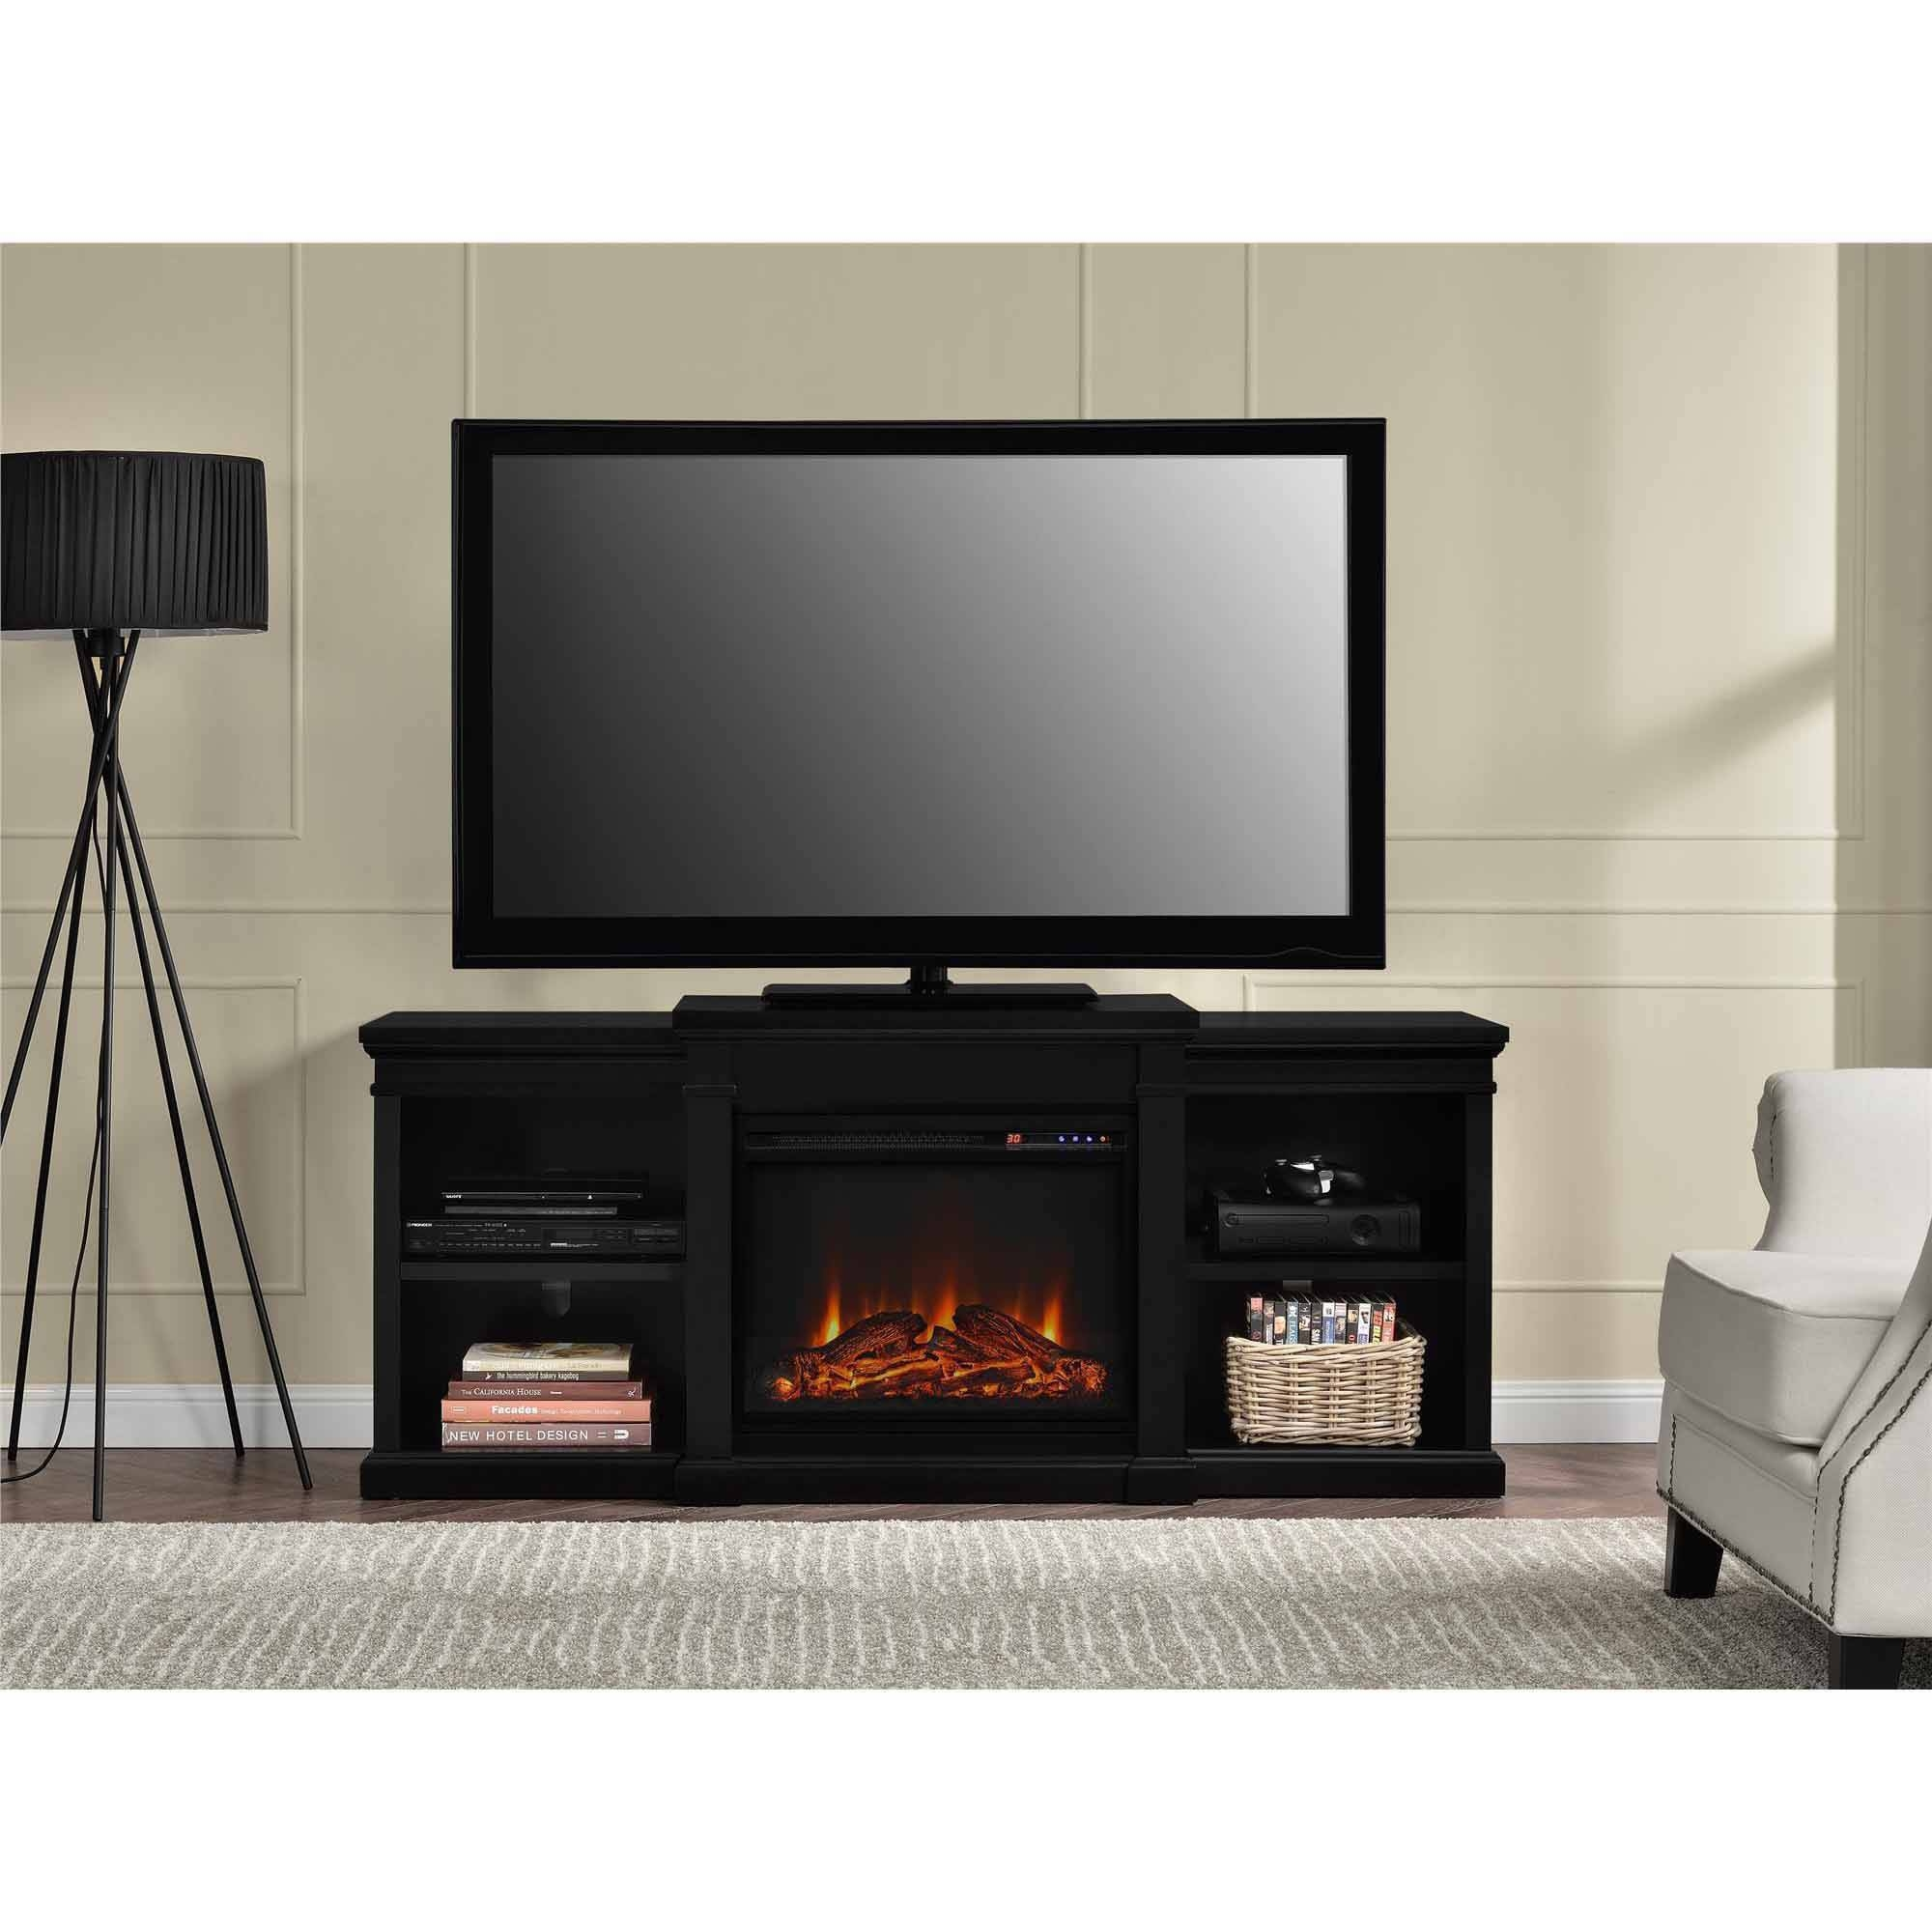 Ameriwood Home Manchester Electric Fireplace Tv Stand For Tvs Up in Tv Stands For 70 Inch Tvs (Image 5 of 15)